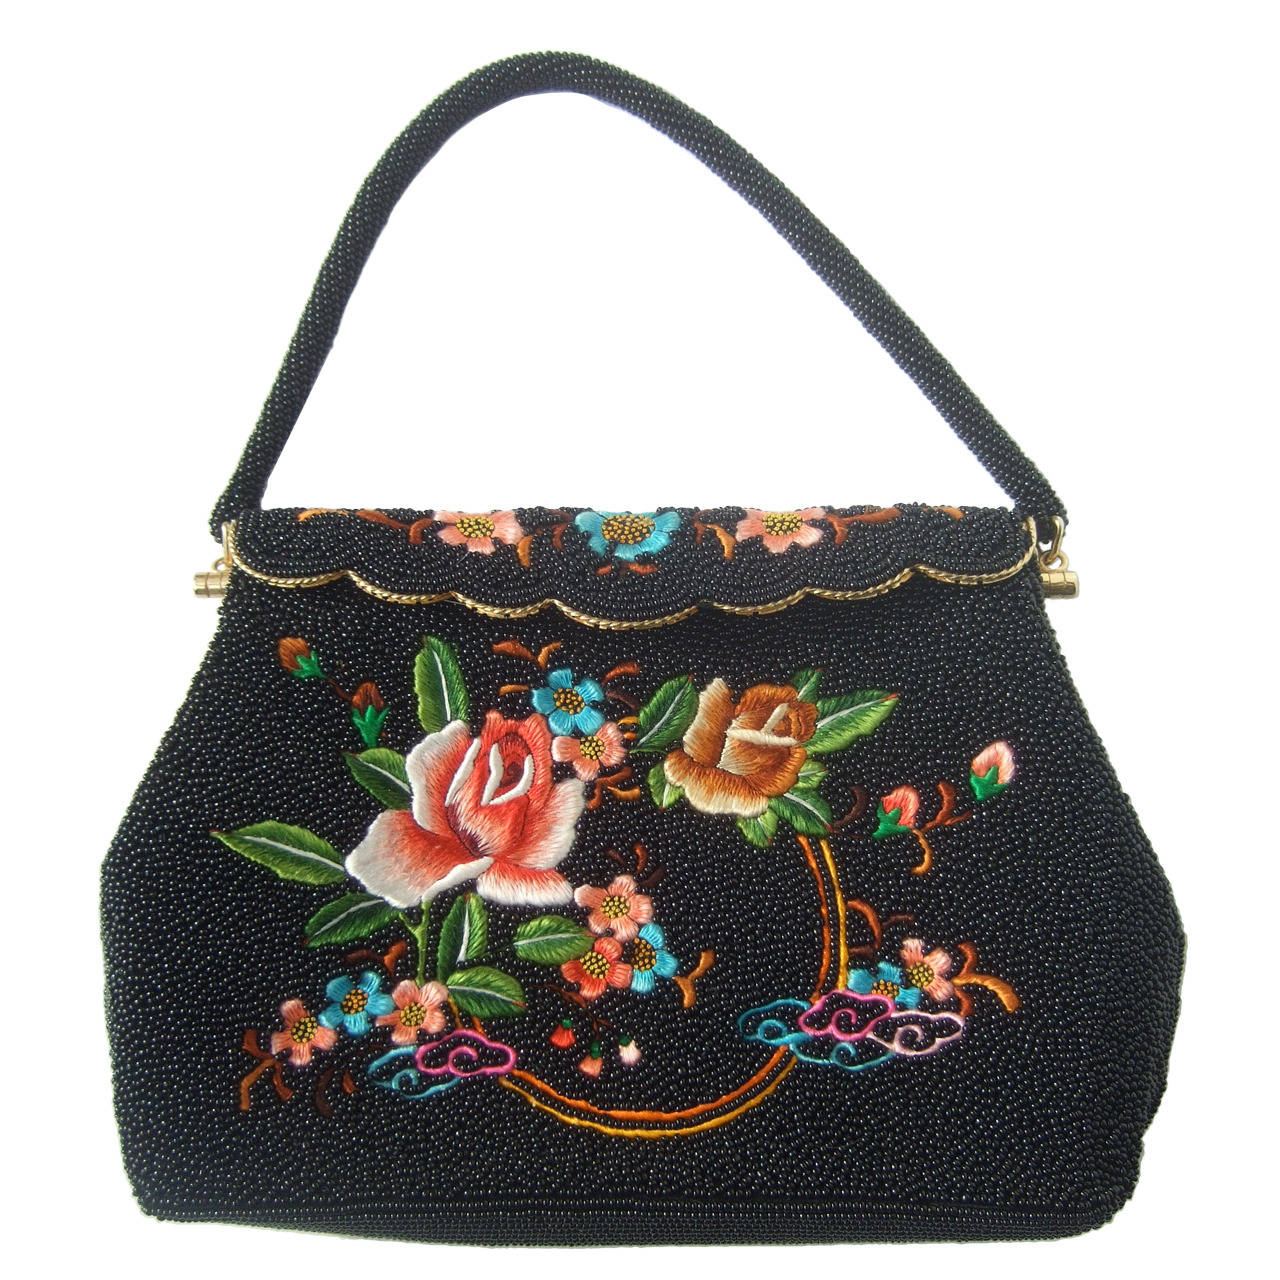 d1434fb4cf939 Exquiste Black Glass Beaded Embroidered Evening Bag c 1960 For Sale.  Exquisite ...